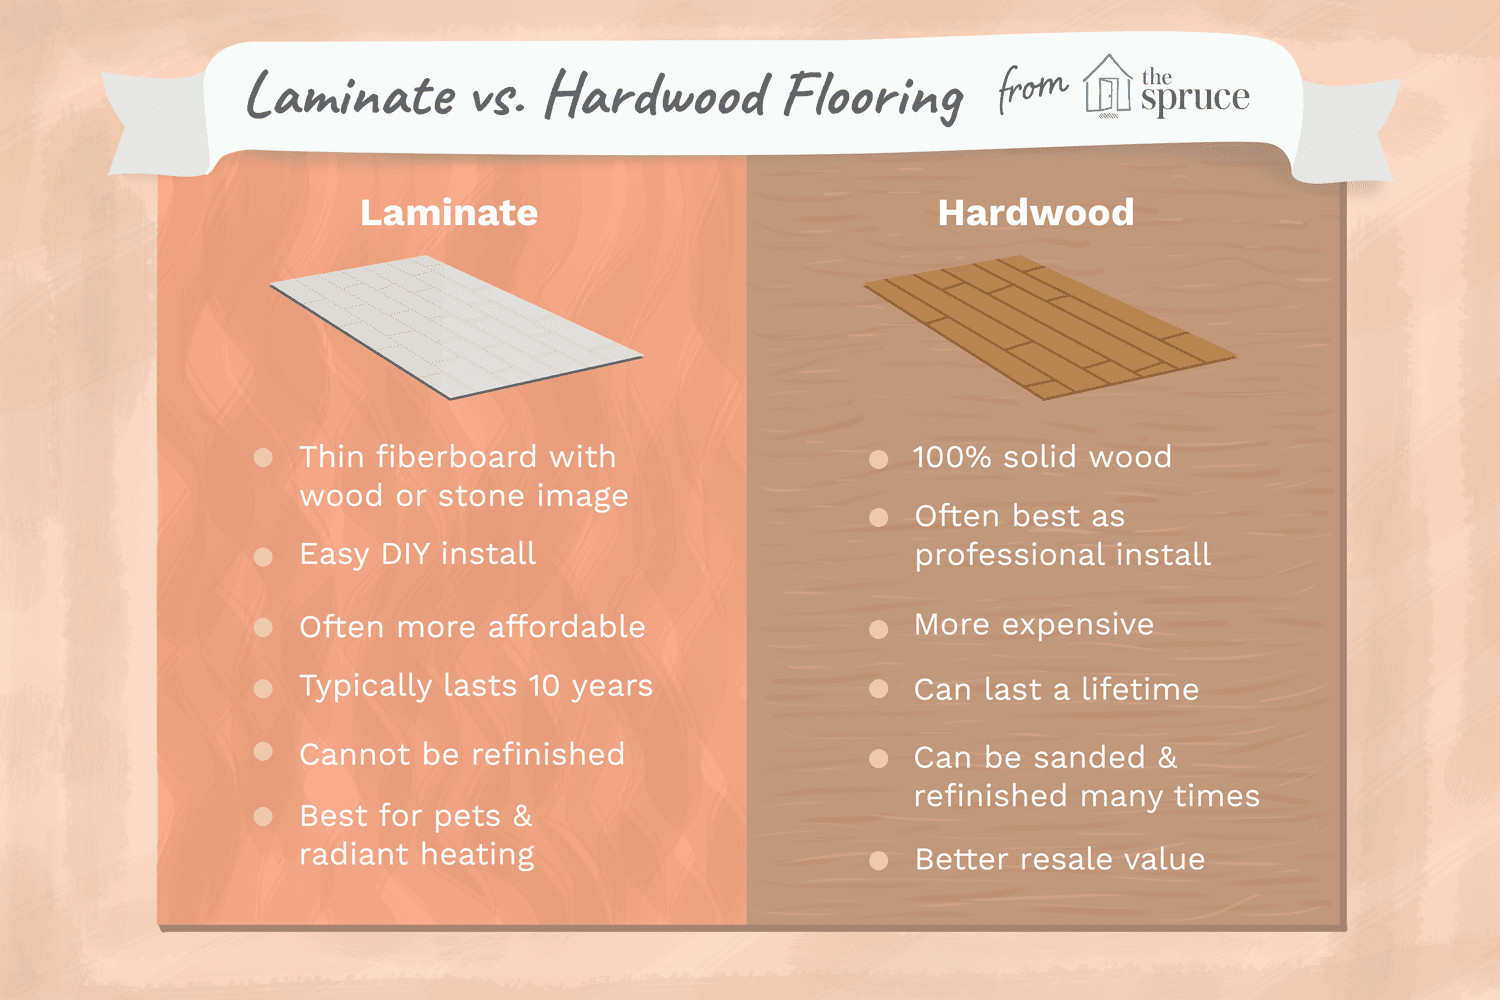 engineered hardwood flooring price per square foot of laminate vs hardwood doesnt have to be a hard decision with regard to hardwood doesnt have to be a hard decision